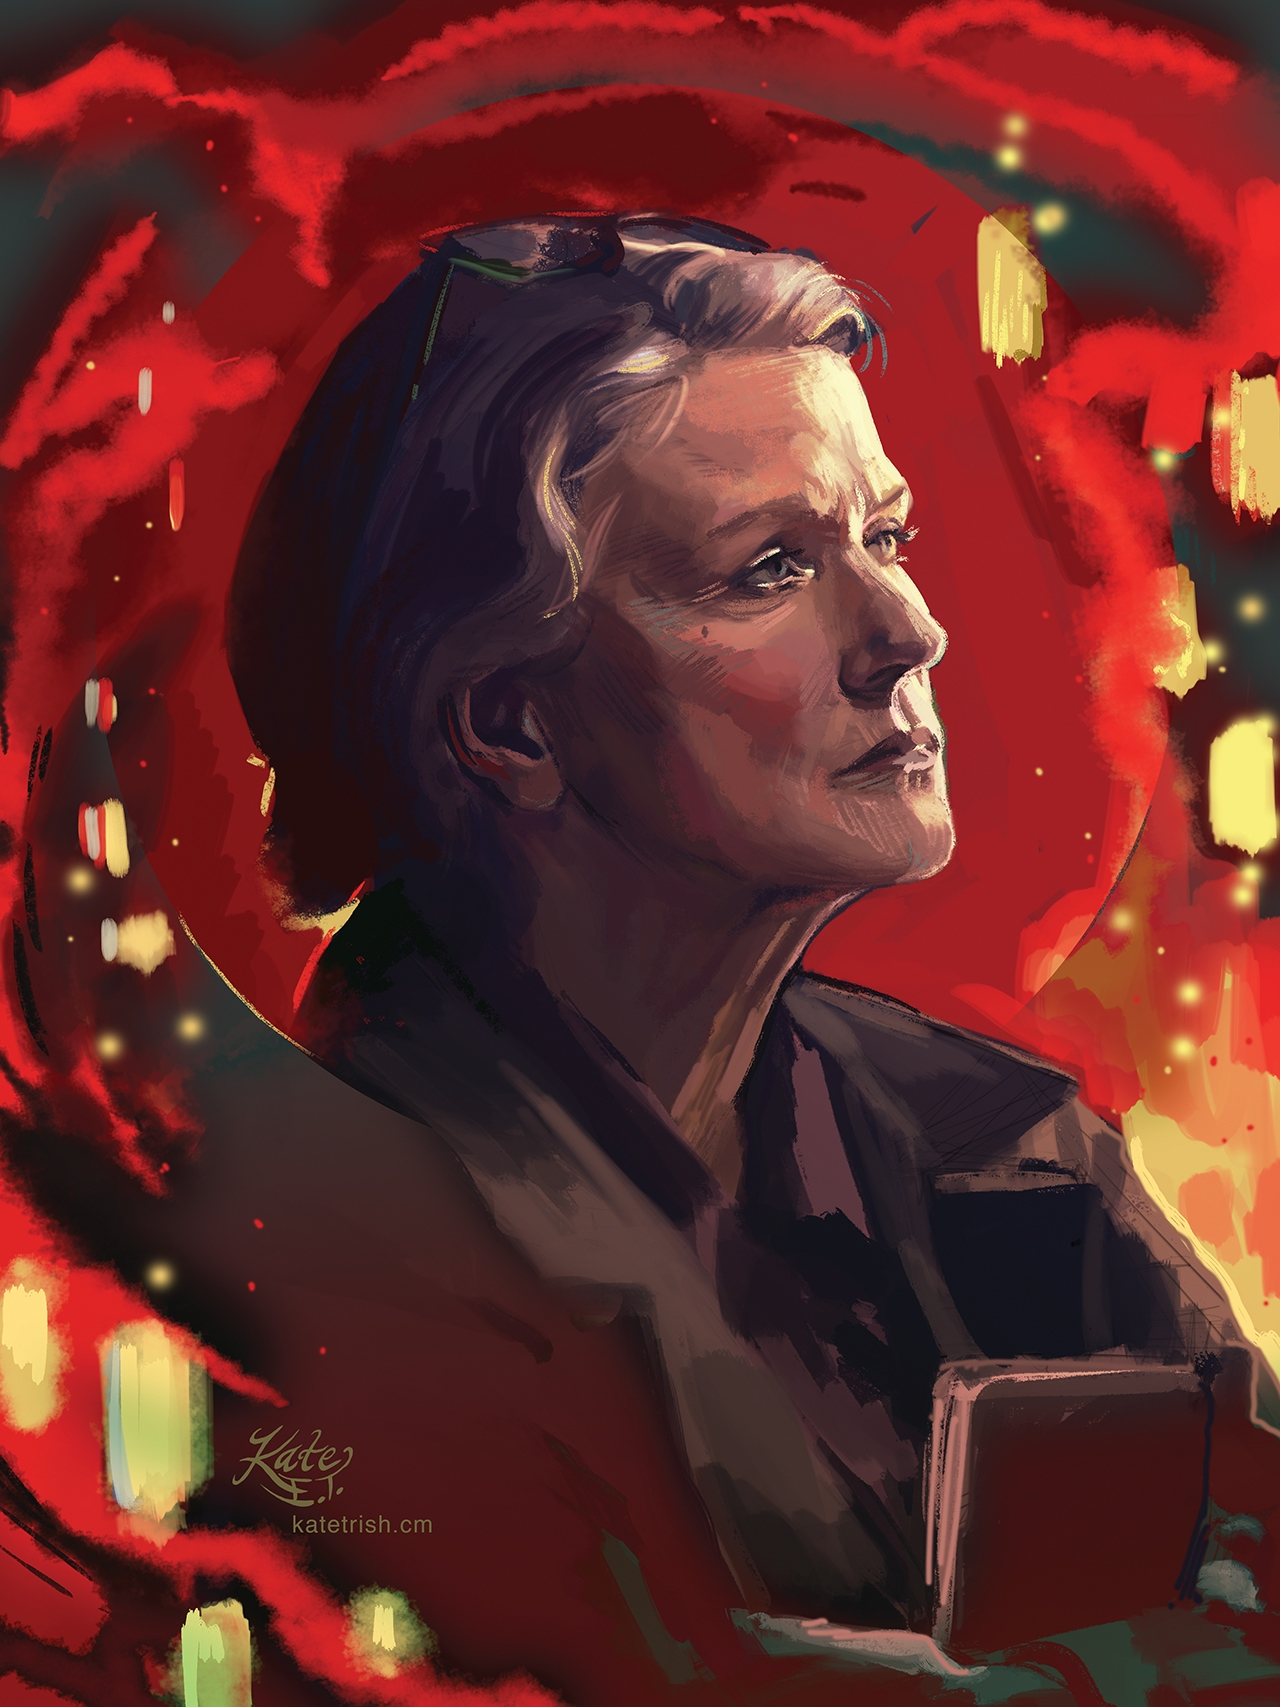 Barbara Sukowa as Dr. Katarina Jones (12 Monkeys)